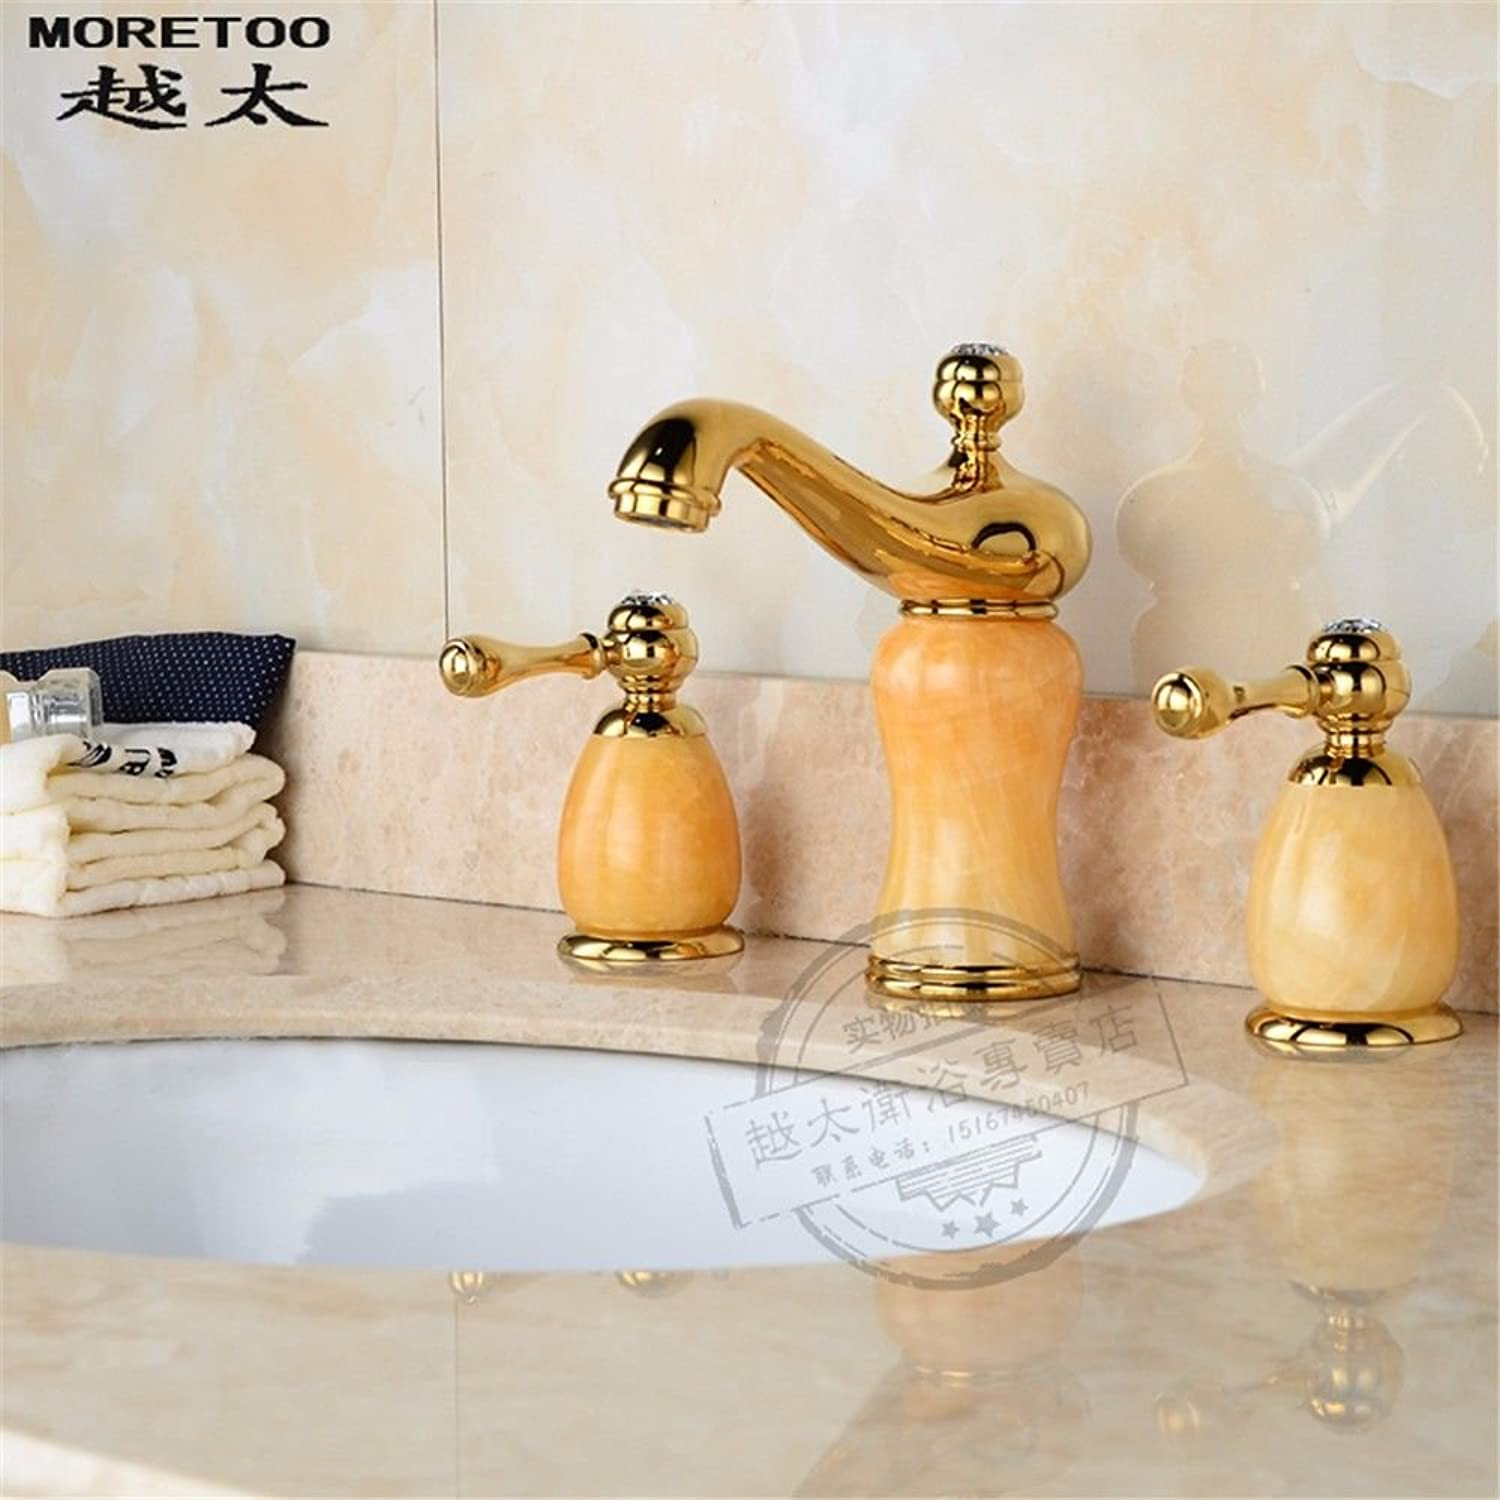 Lpophy Bathroom Sink Mixer Taps Faucet Bath Waterfall Cold and Hot Water Tap for Washroom Bathroom and Kitchen Double Three-Hole Split Hot and Cold Copper